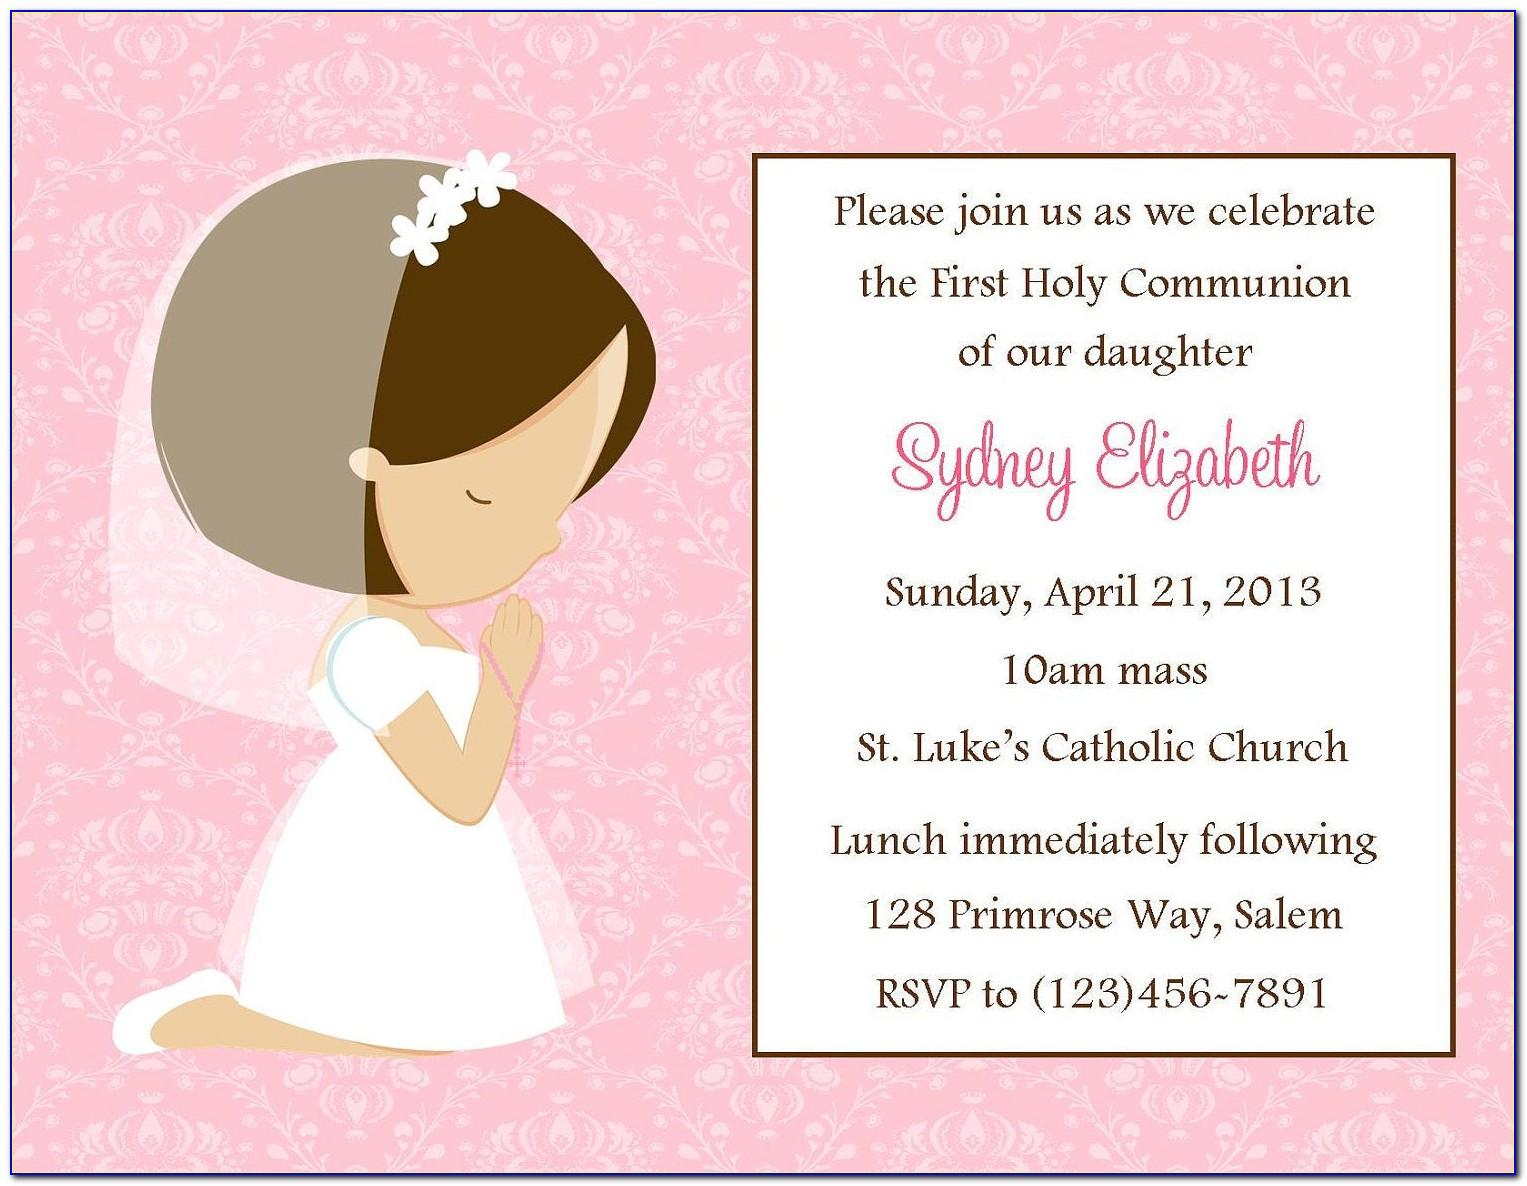 First Holy Communion Invitation Card Template